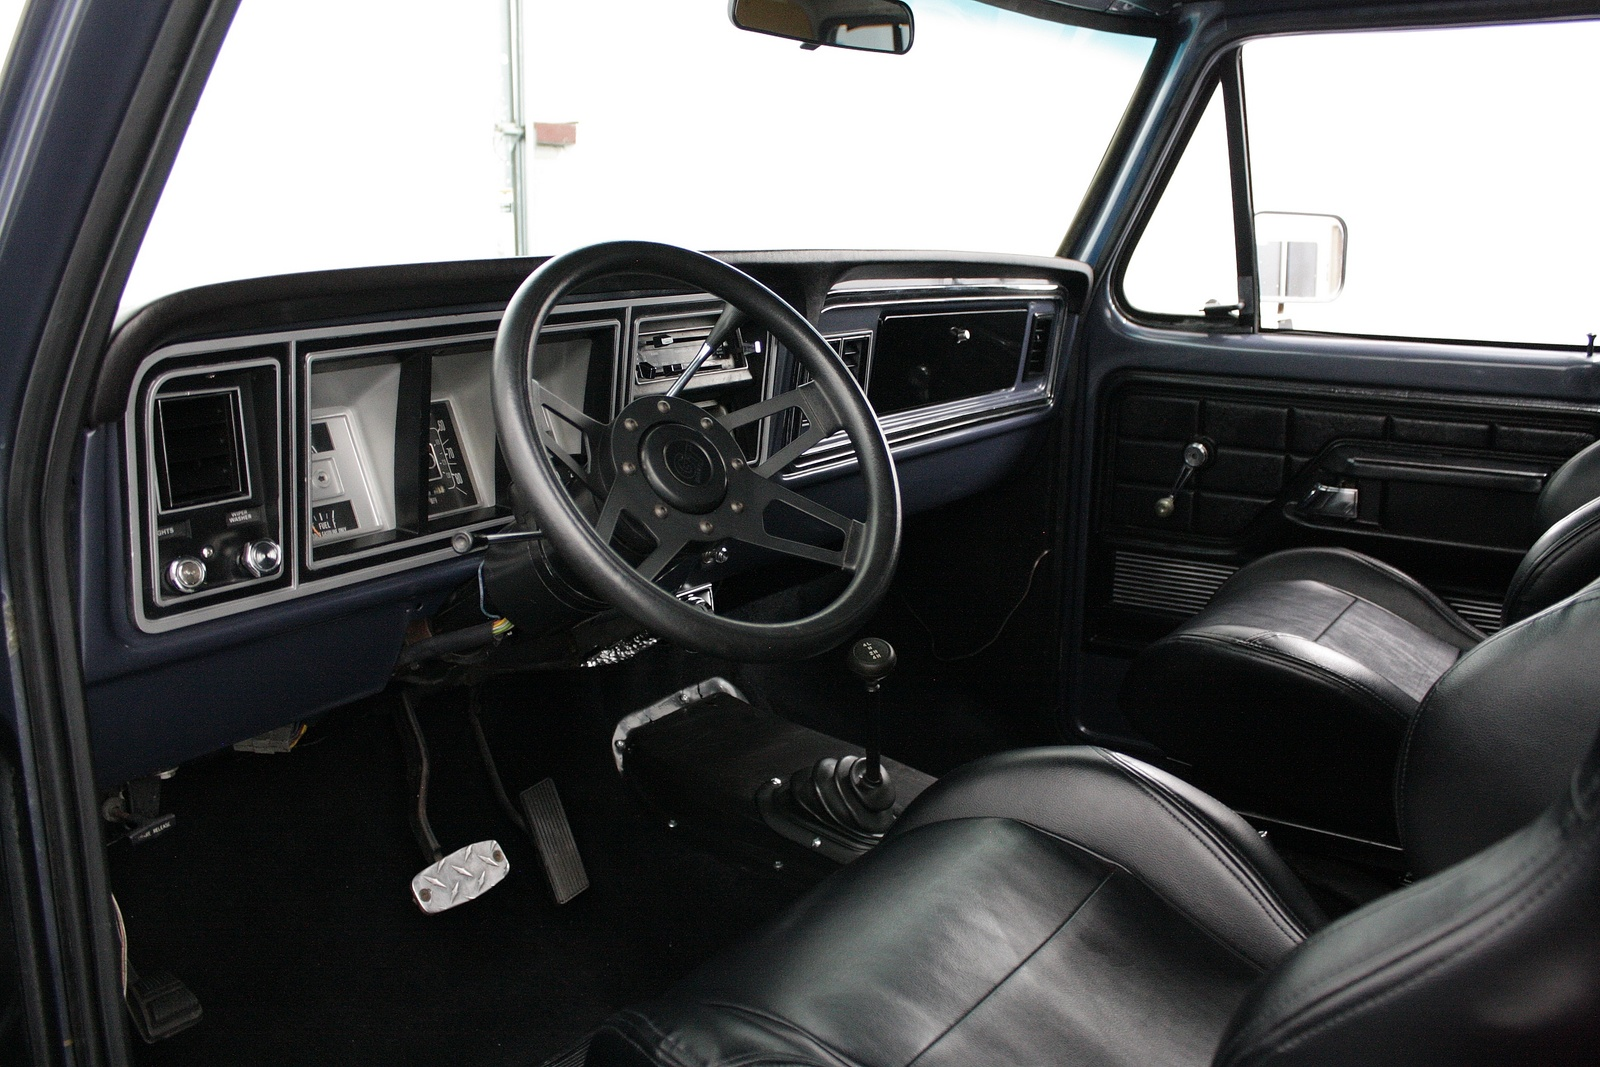 1979 ford bronco upholstery